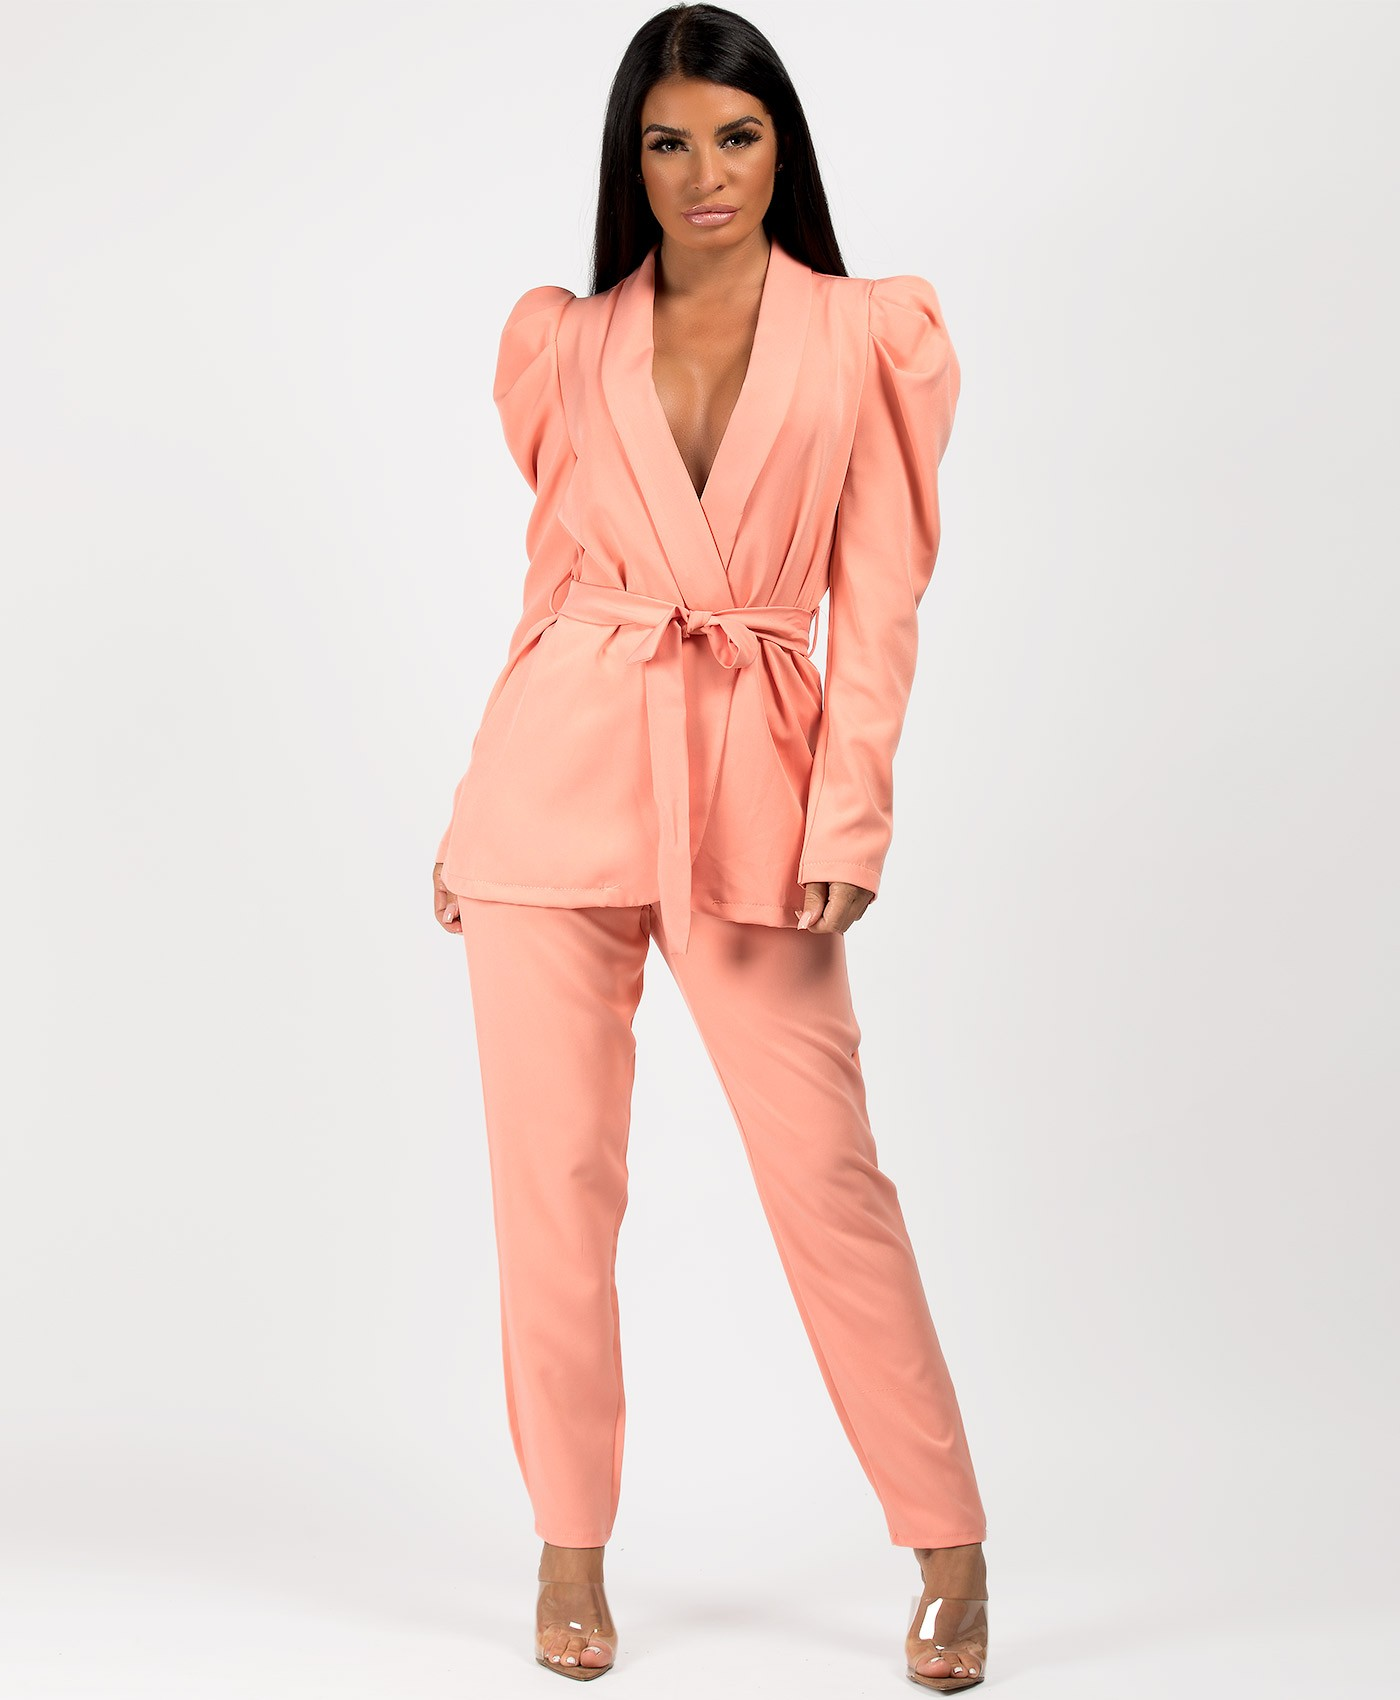 Peach Tie Blazer And Trouser Suit Co Ord Set